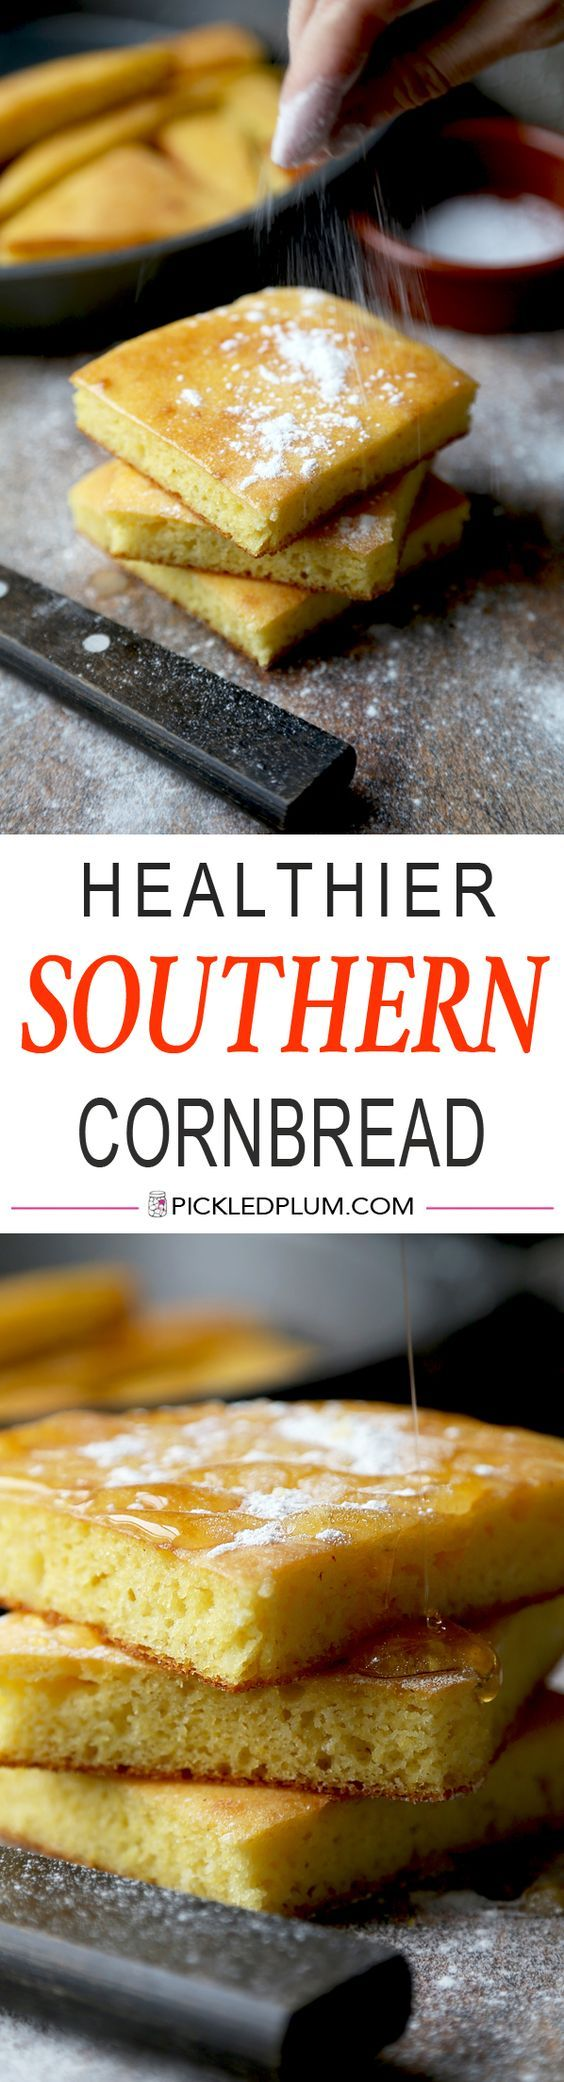 Healthier Southern Cornbread Recipe - and it only takes 25 minutes to make it! | Pickled Plum